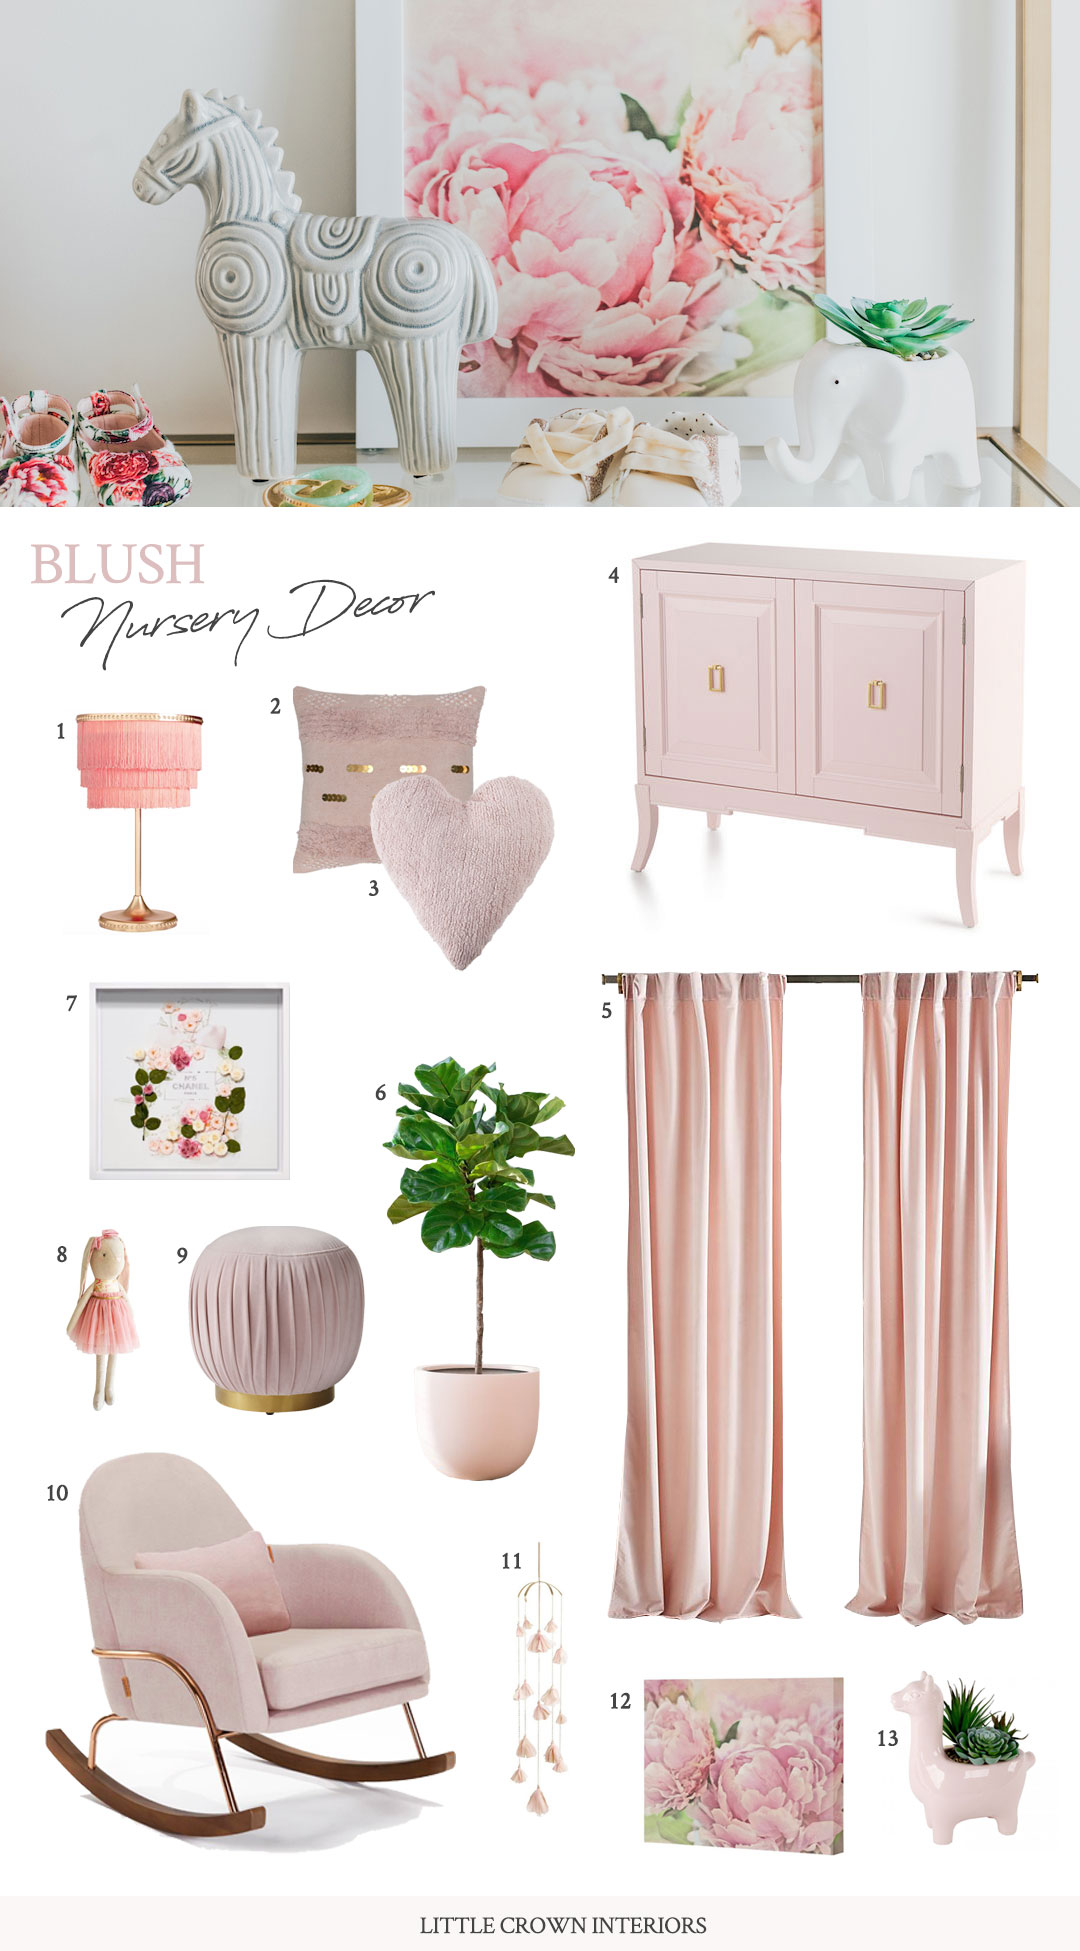 Blush Pink Nursery Decor | Little Crown Interiors